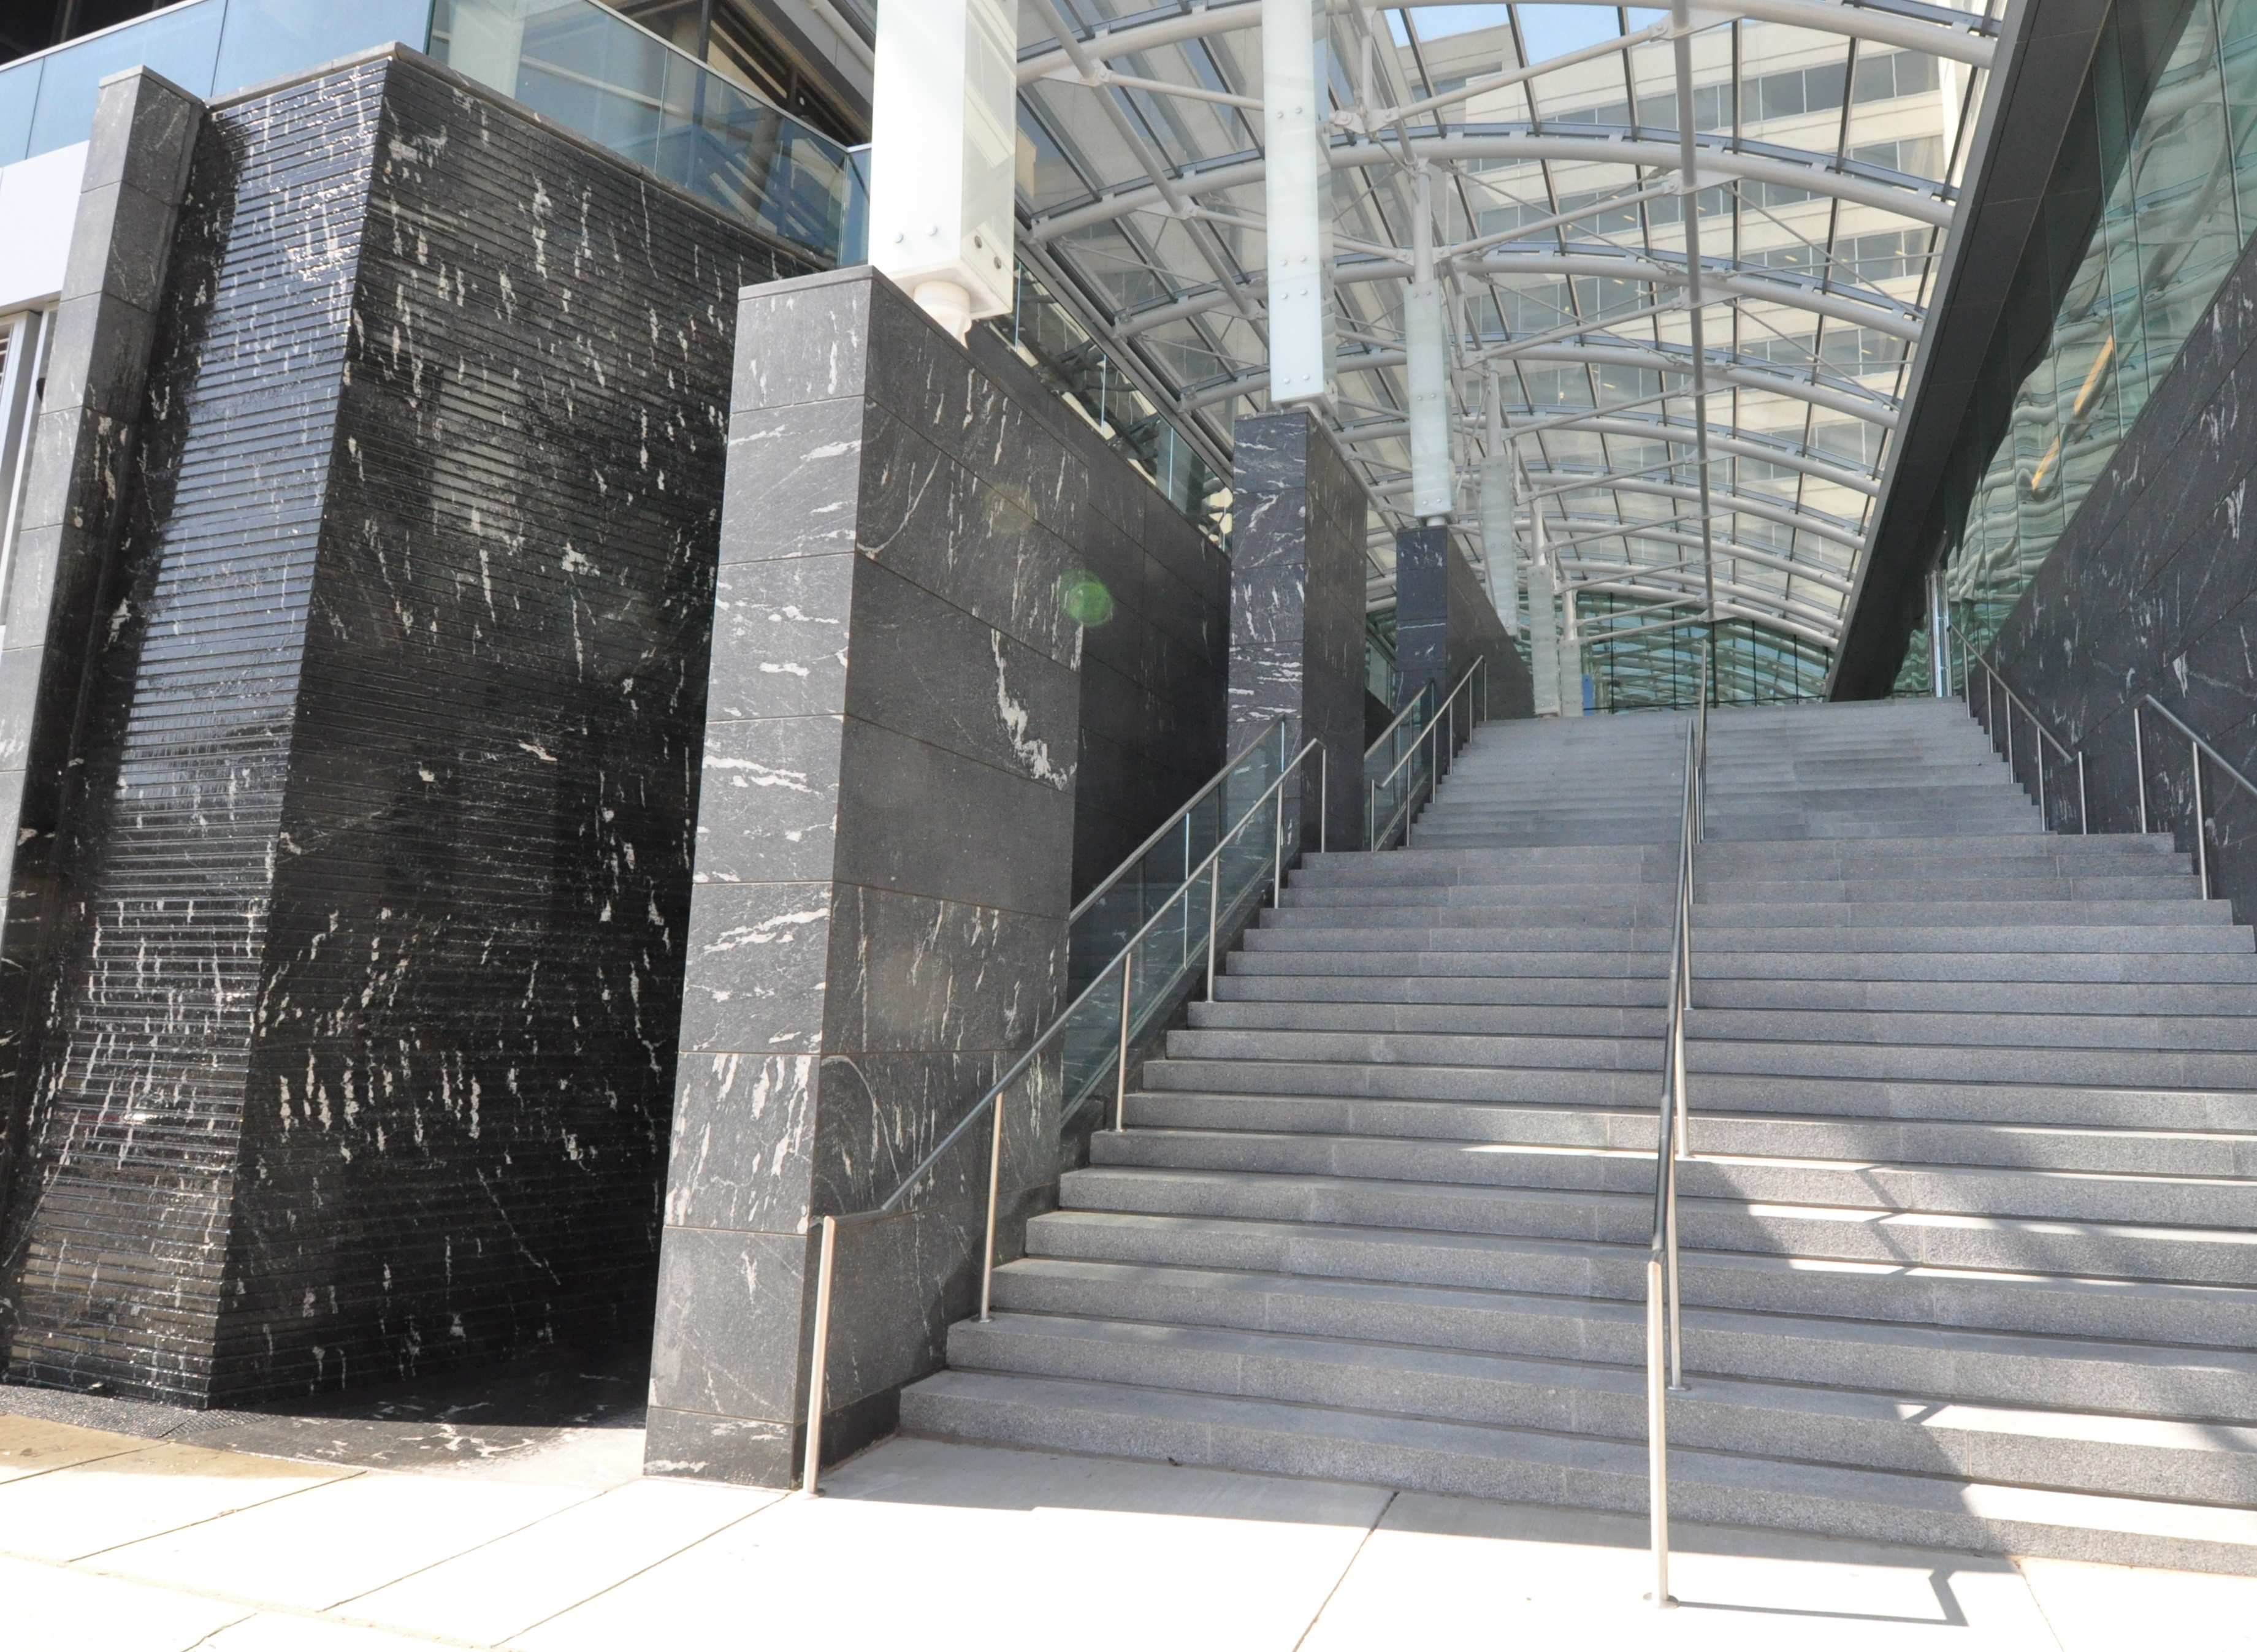 23ft Tall Cut Granite Water Wall, Greensboro Station, McLean, VA. Design by Smith Group JJR.